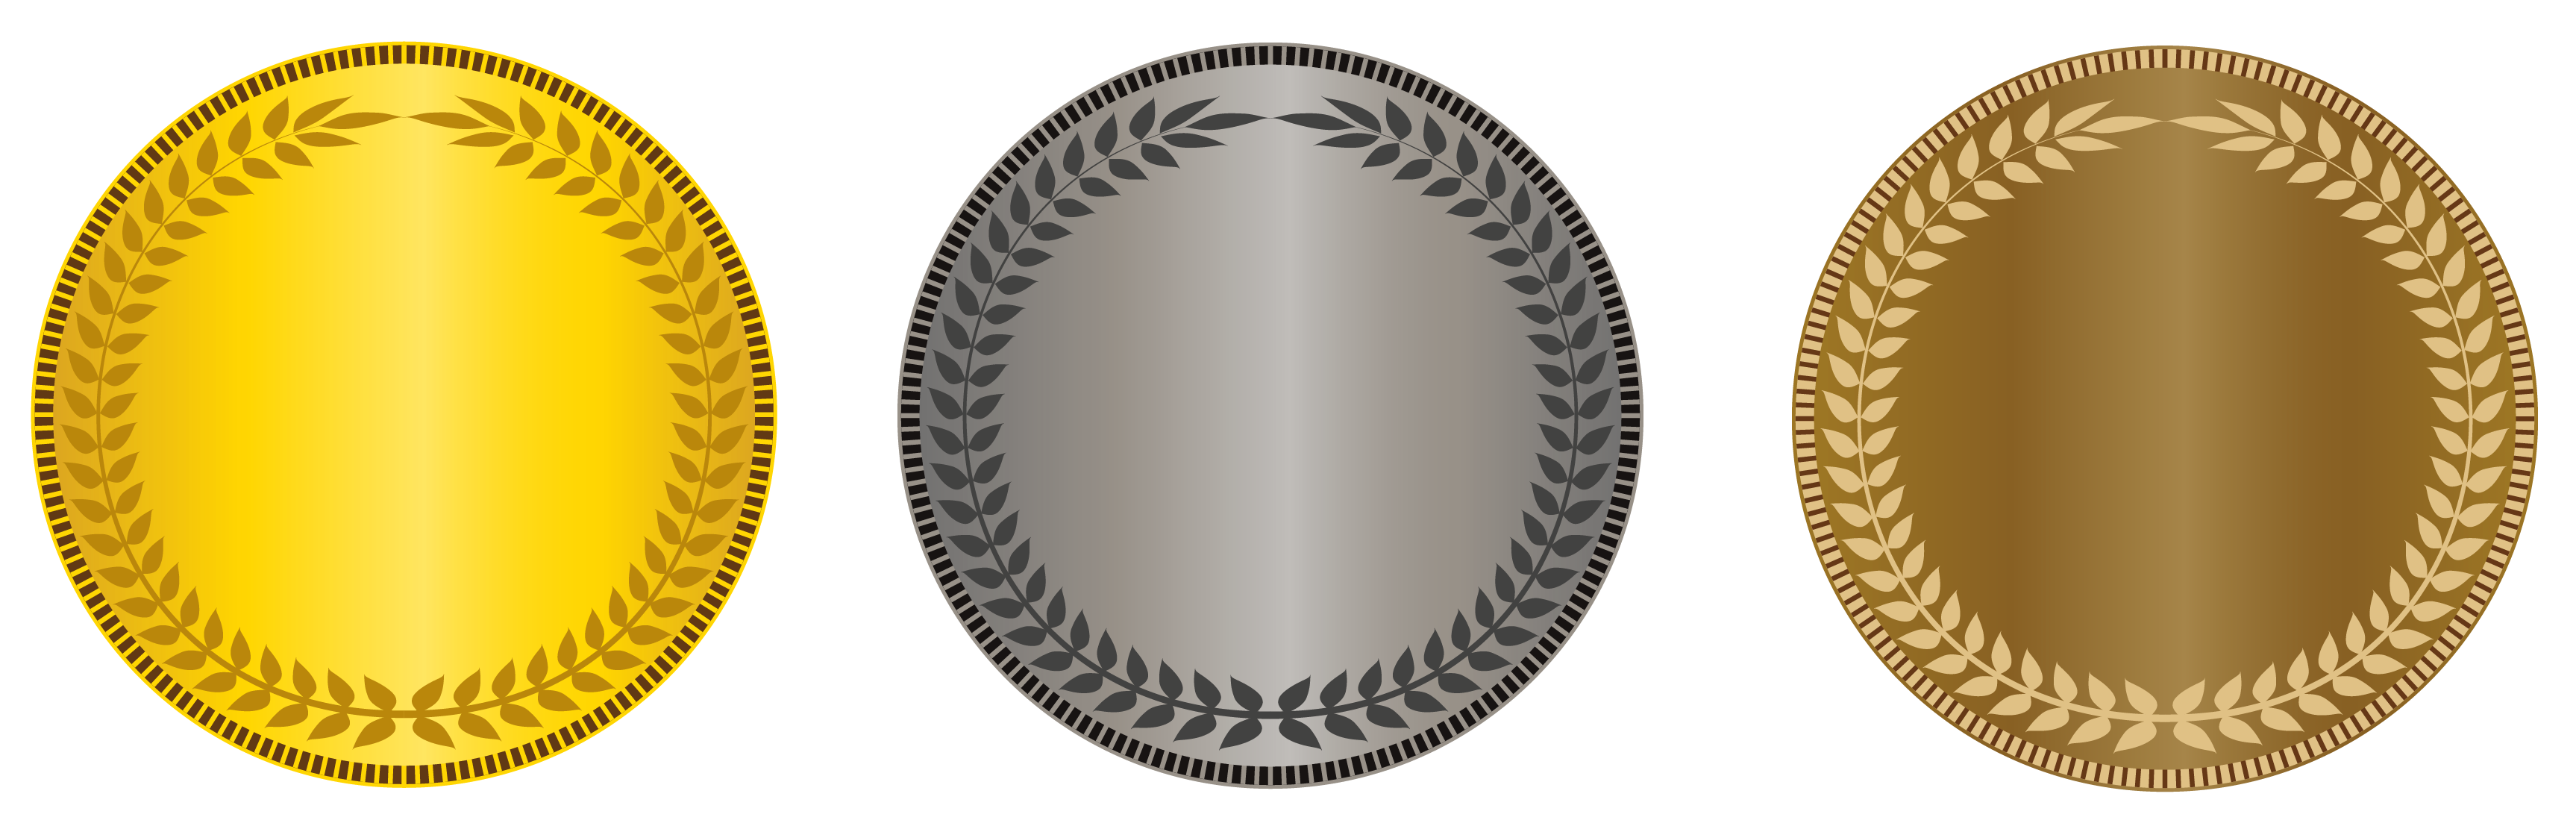 Clipart brons crown jpg royalty free stock Transparent Gold Silver Bronze Medals PNG Picture | Gallery ... jpg royalty free stock